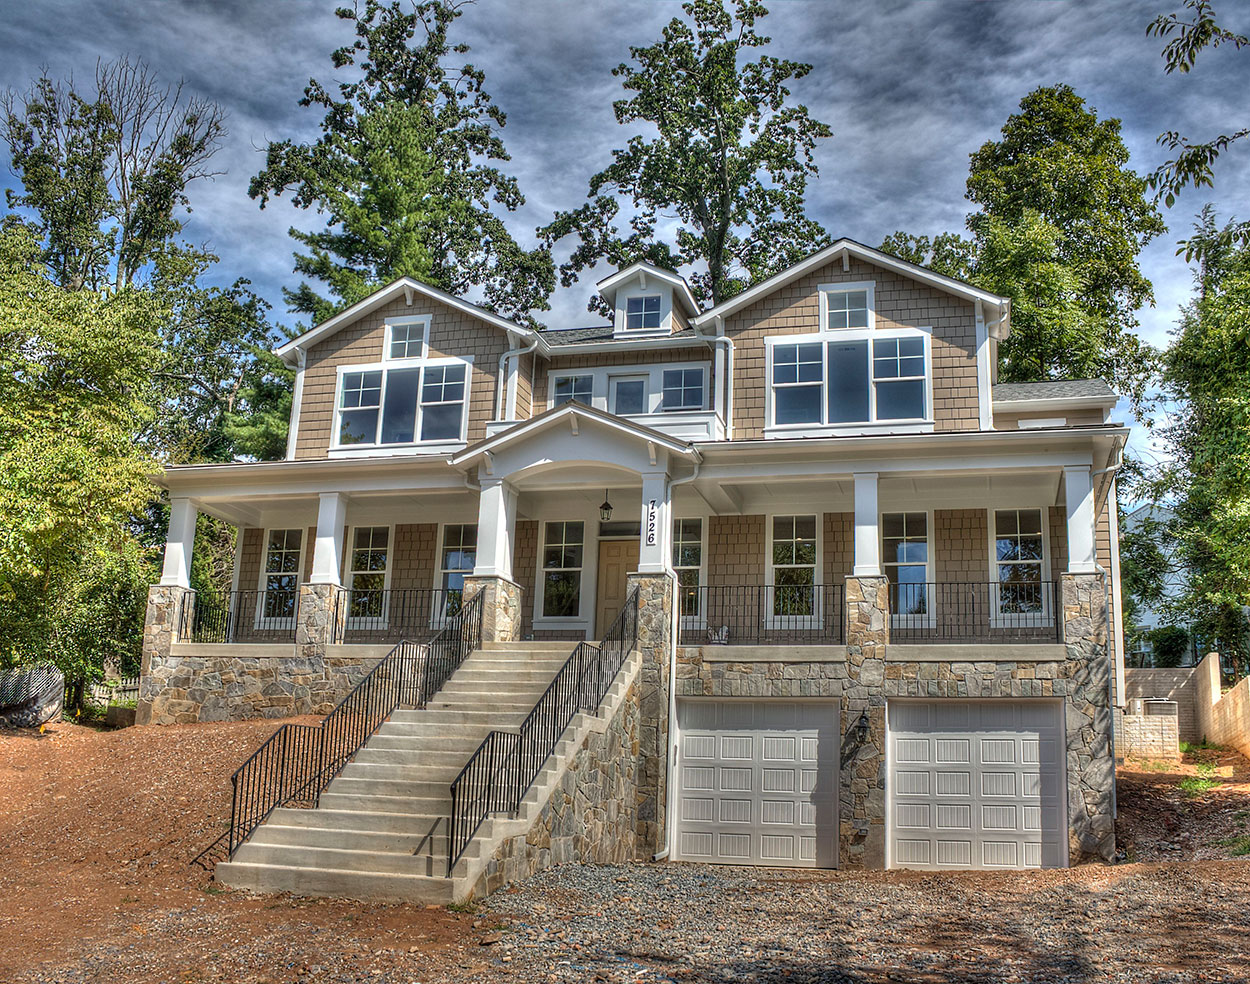 Custom home rosedale model bethesda md 2016 for Classic home builders